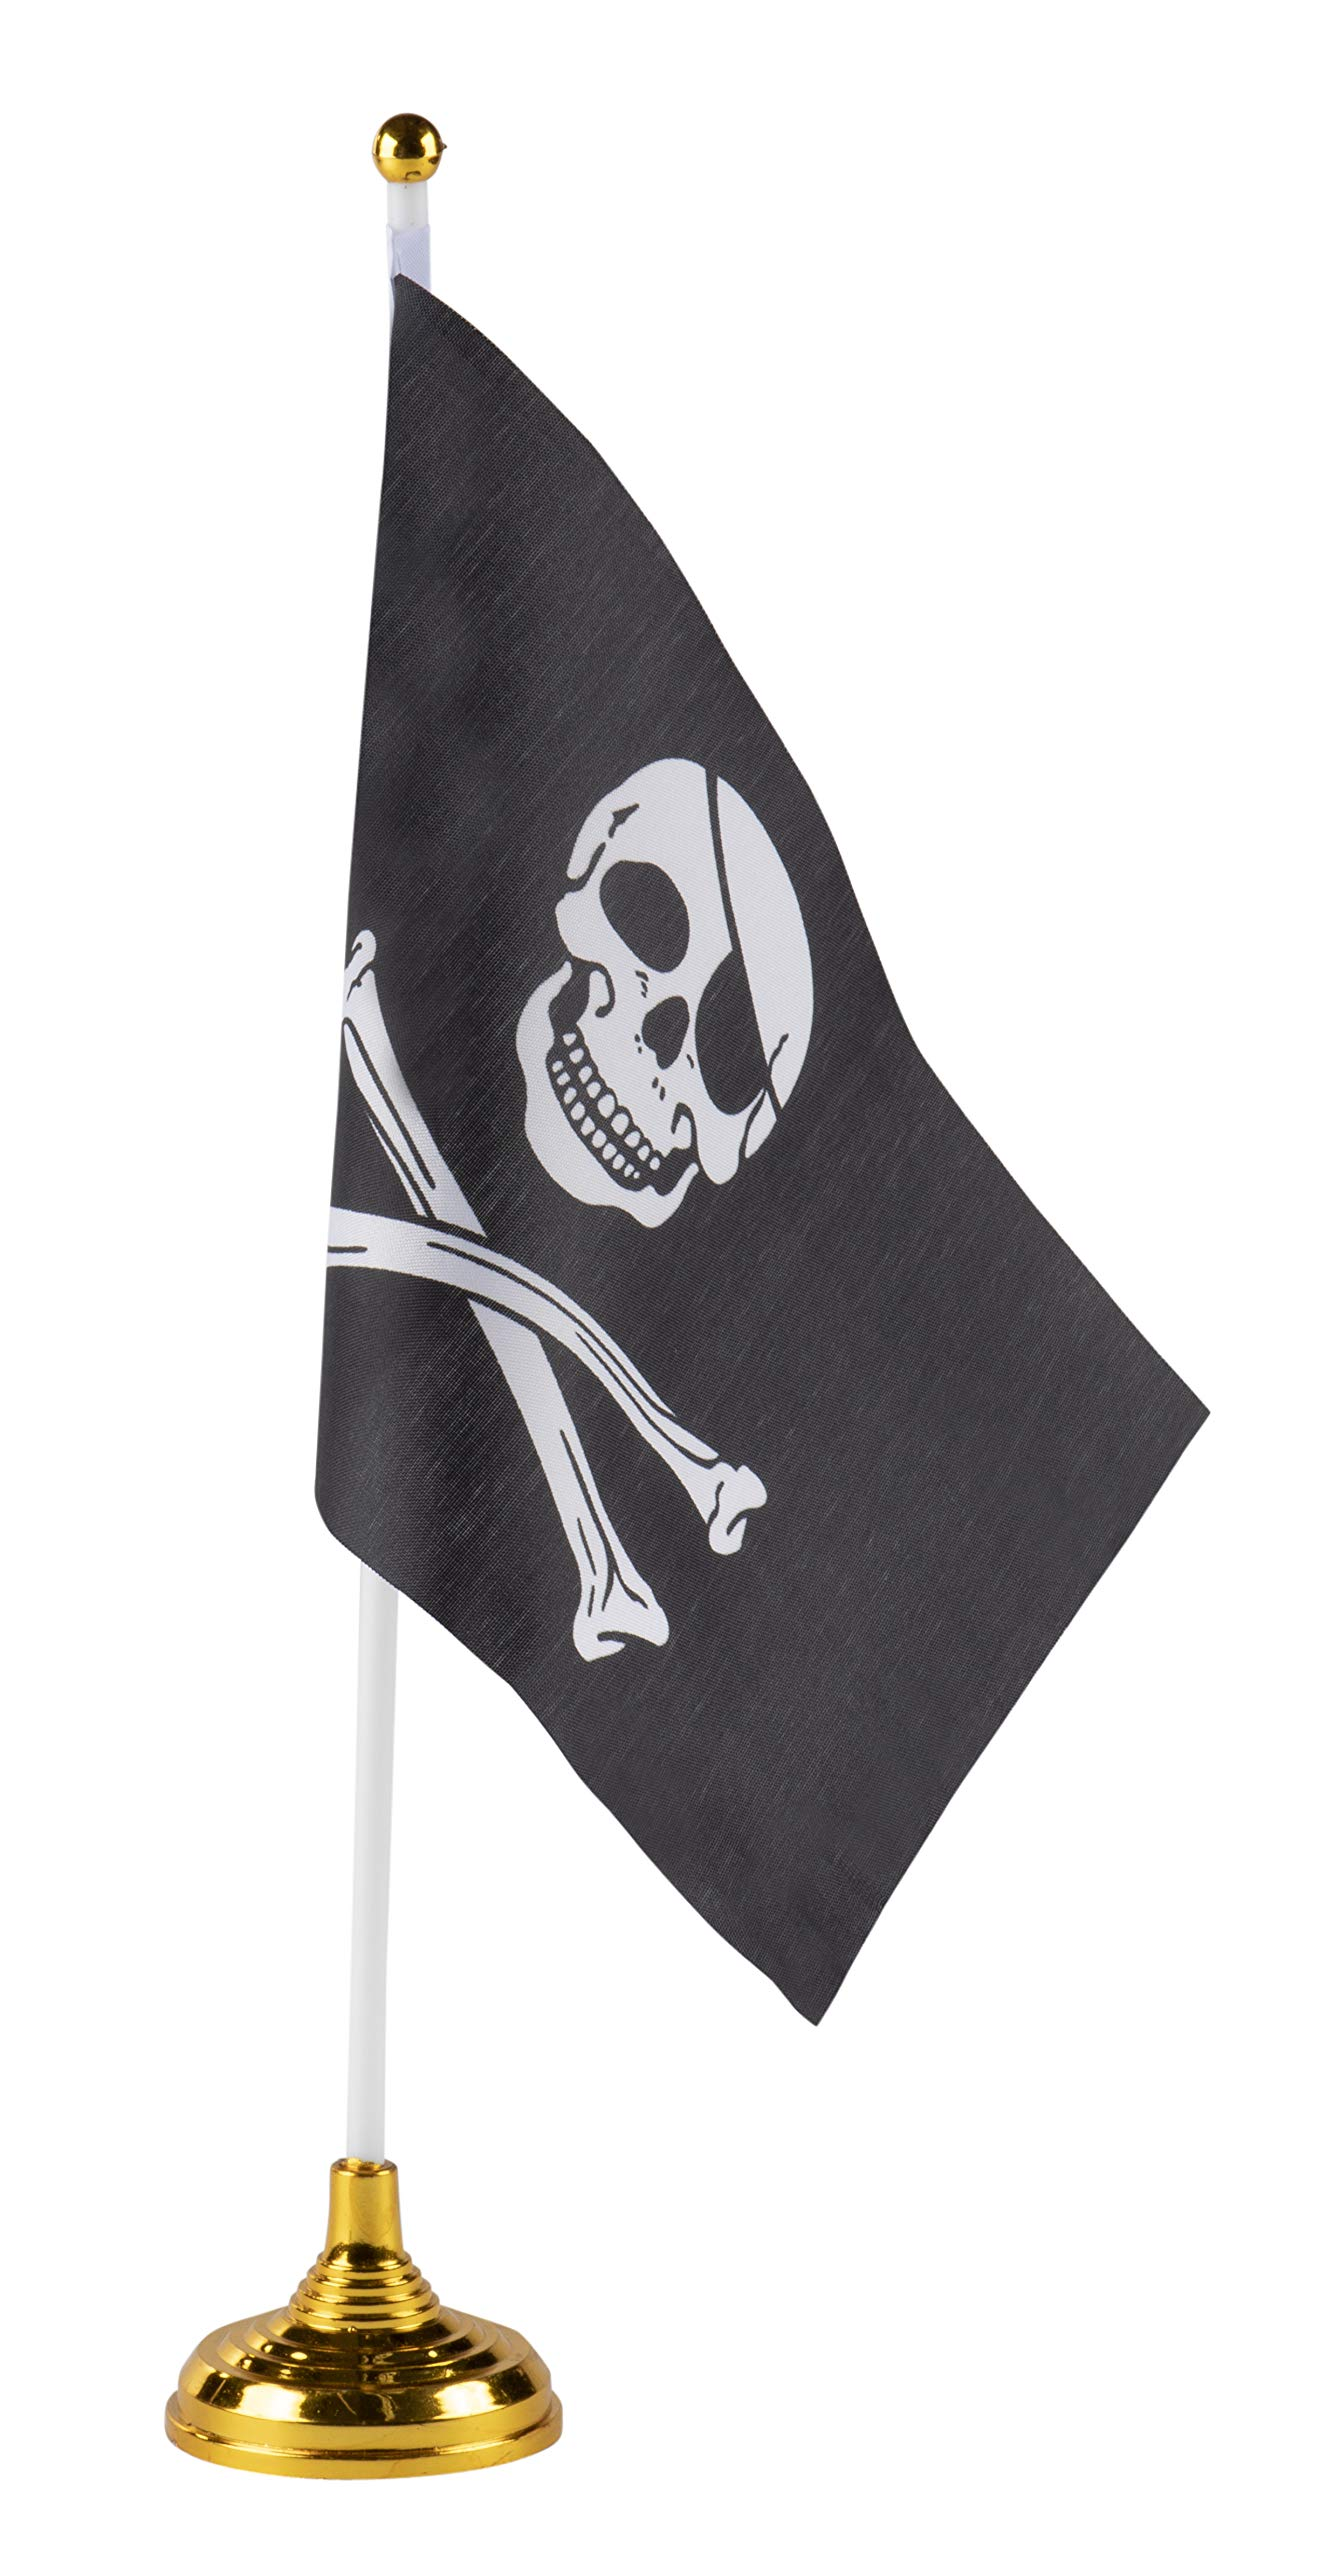 Pirate Desk Flags - 24-Piece Desktop Flags with Stick and Gold Stand, Black Jolly Roger Skull and Crossbones Flag Table Decoration, 8.5 x 5.5 Inches